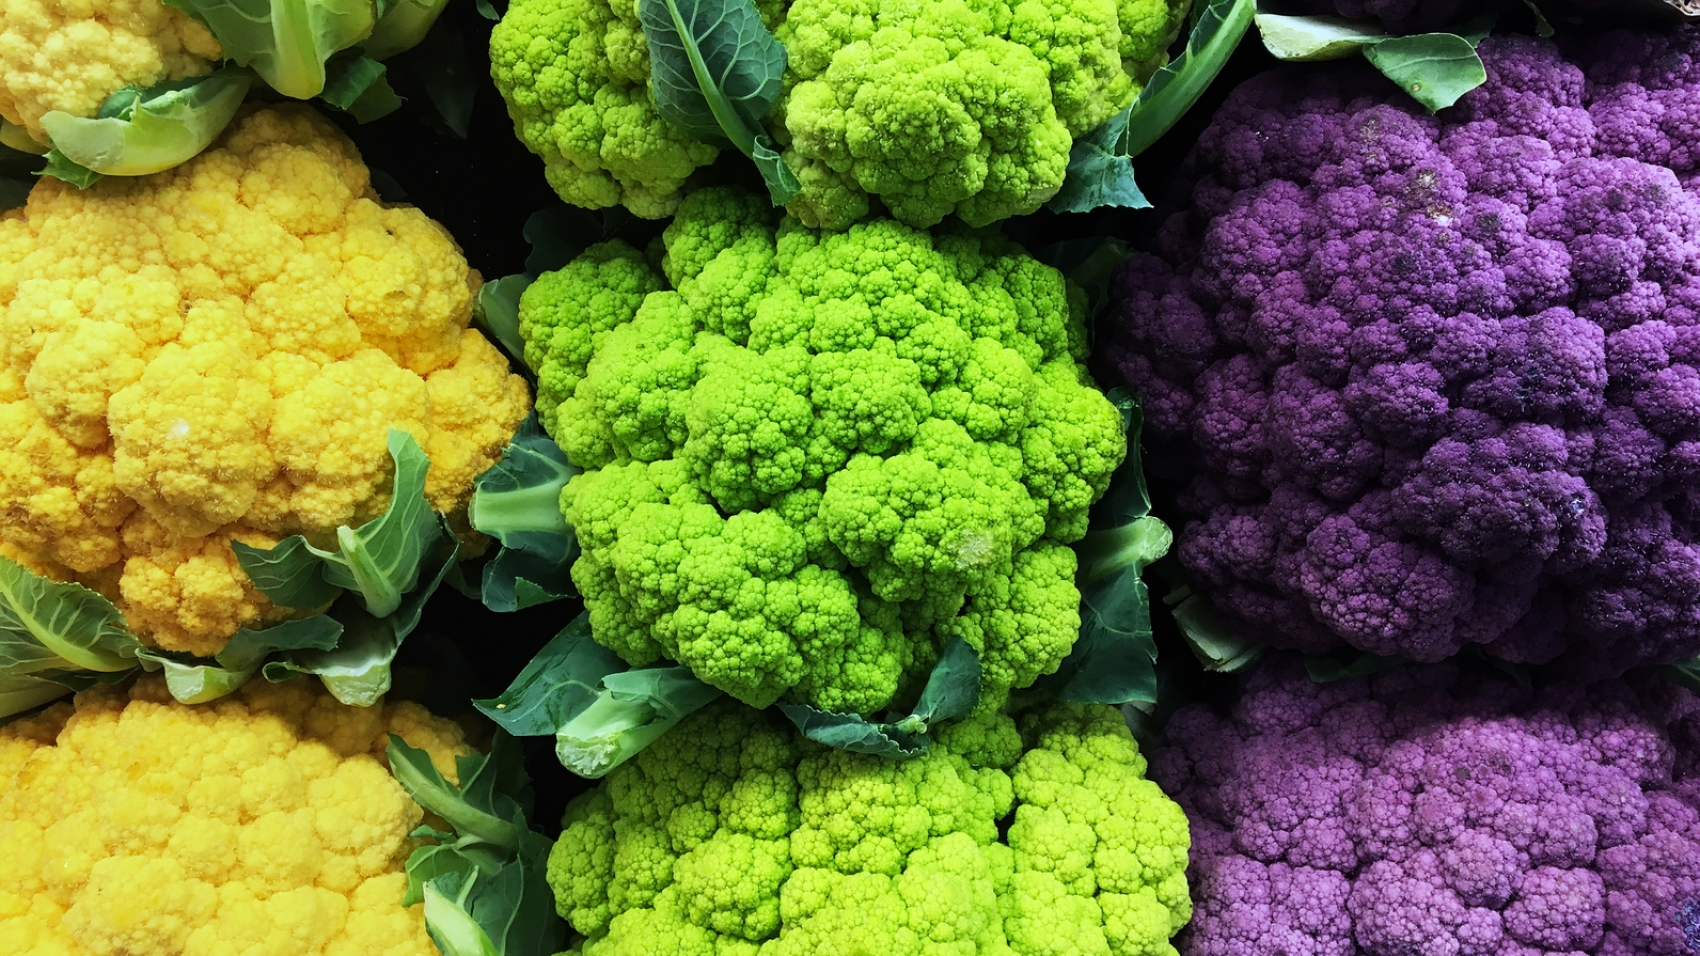 A still-life of yellow, green, and purple cauliflower.